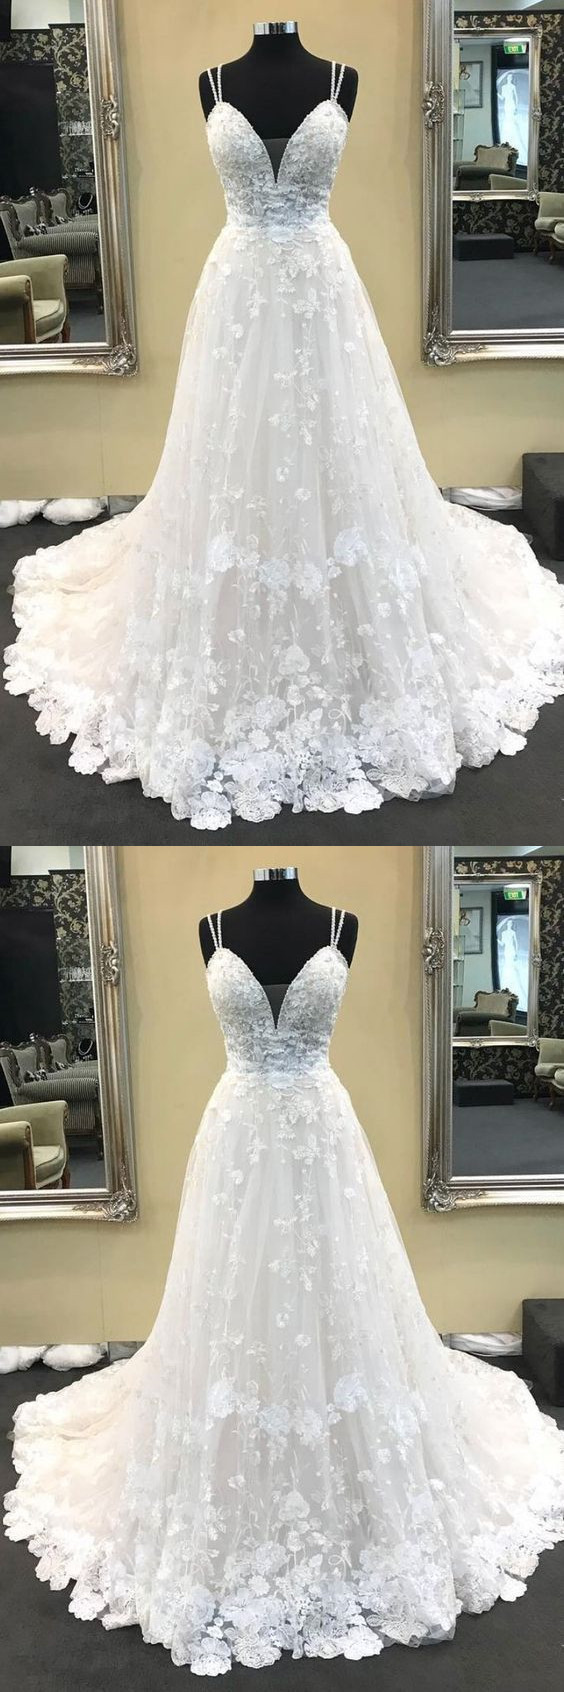 Ball Gown V Neck Spaghetti Straps White Lace Long Wedding Dresses